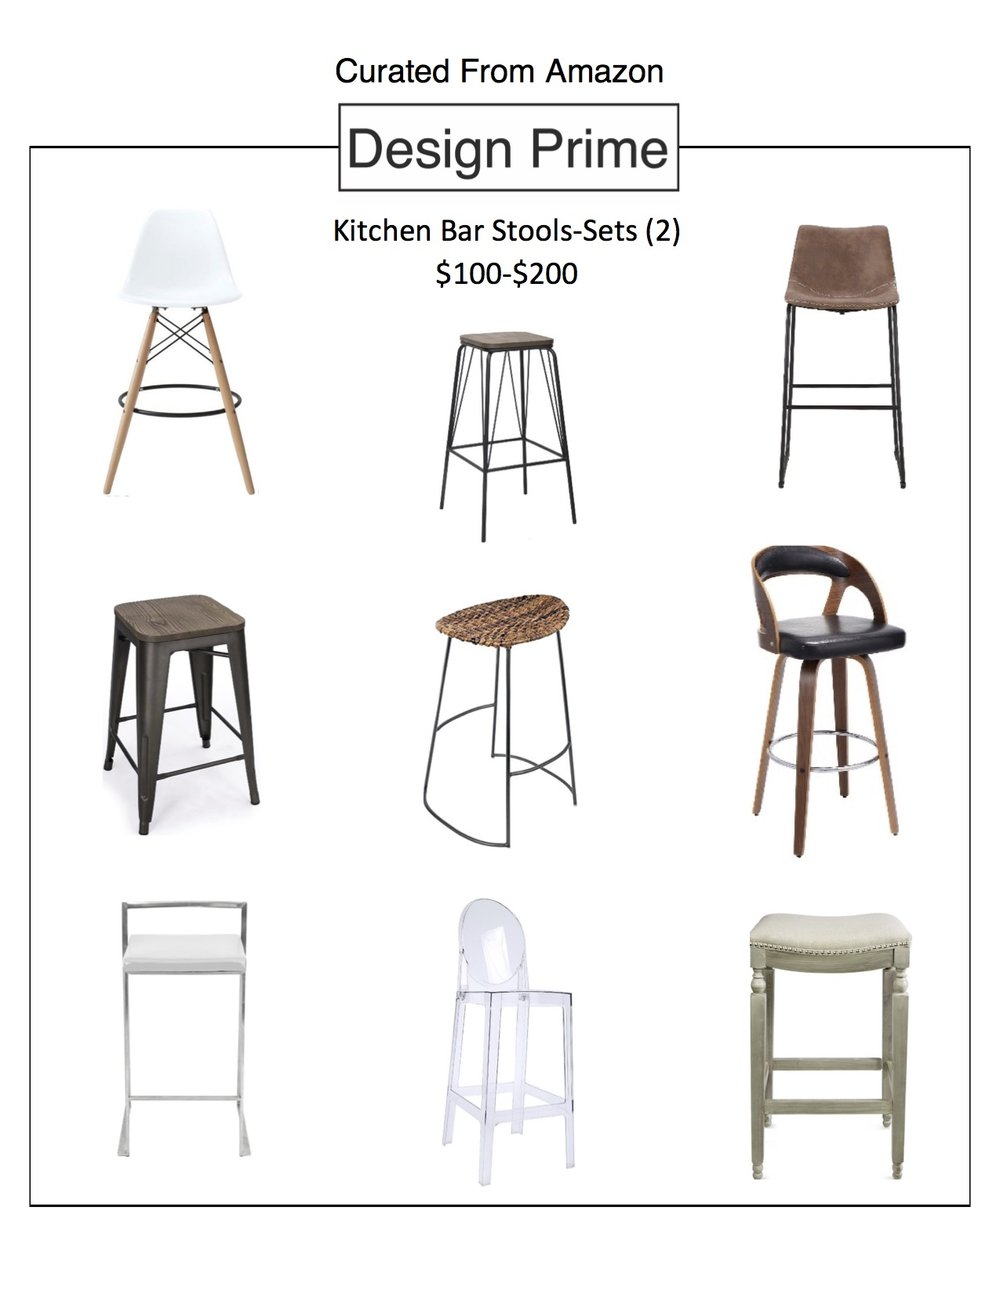 tree amazondrafting graco stool garden com ideas saddle full selling amazon home best charlie size eames step bar folding stools photos lightweighttchen kitchen covers helper copper dsw charles of design wonderful style